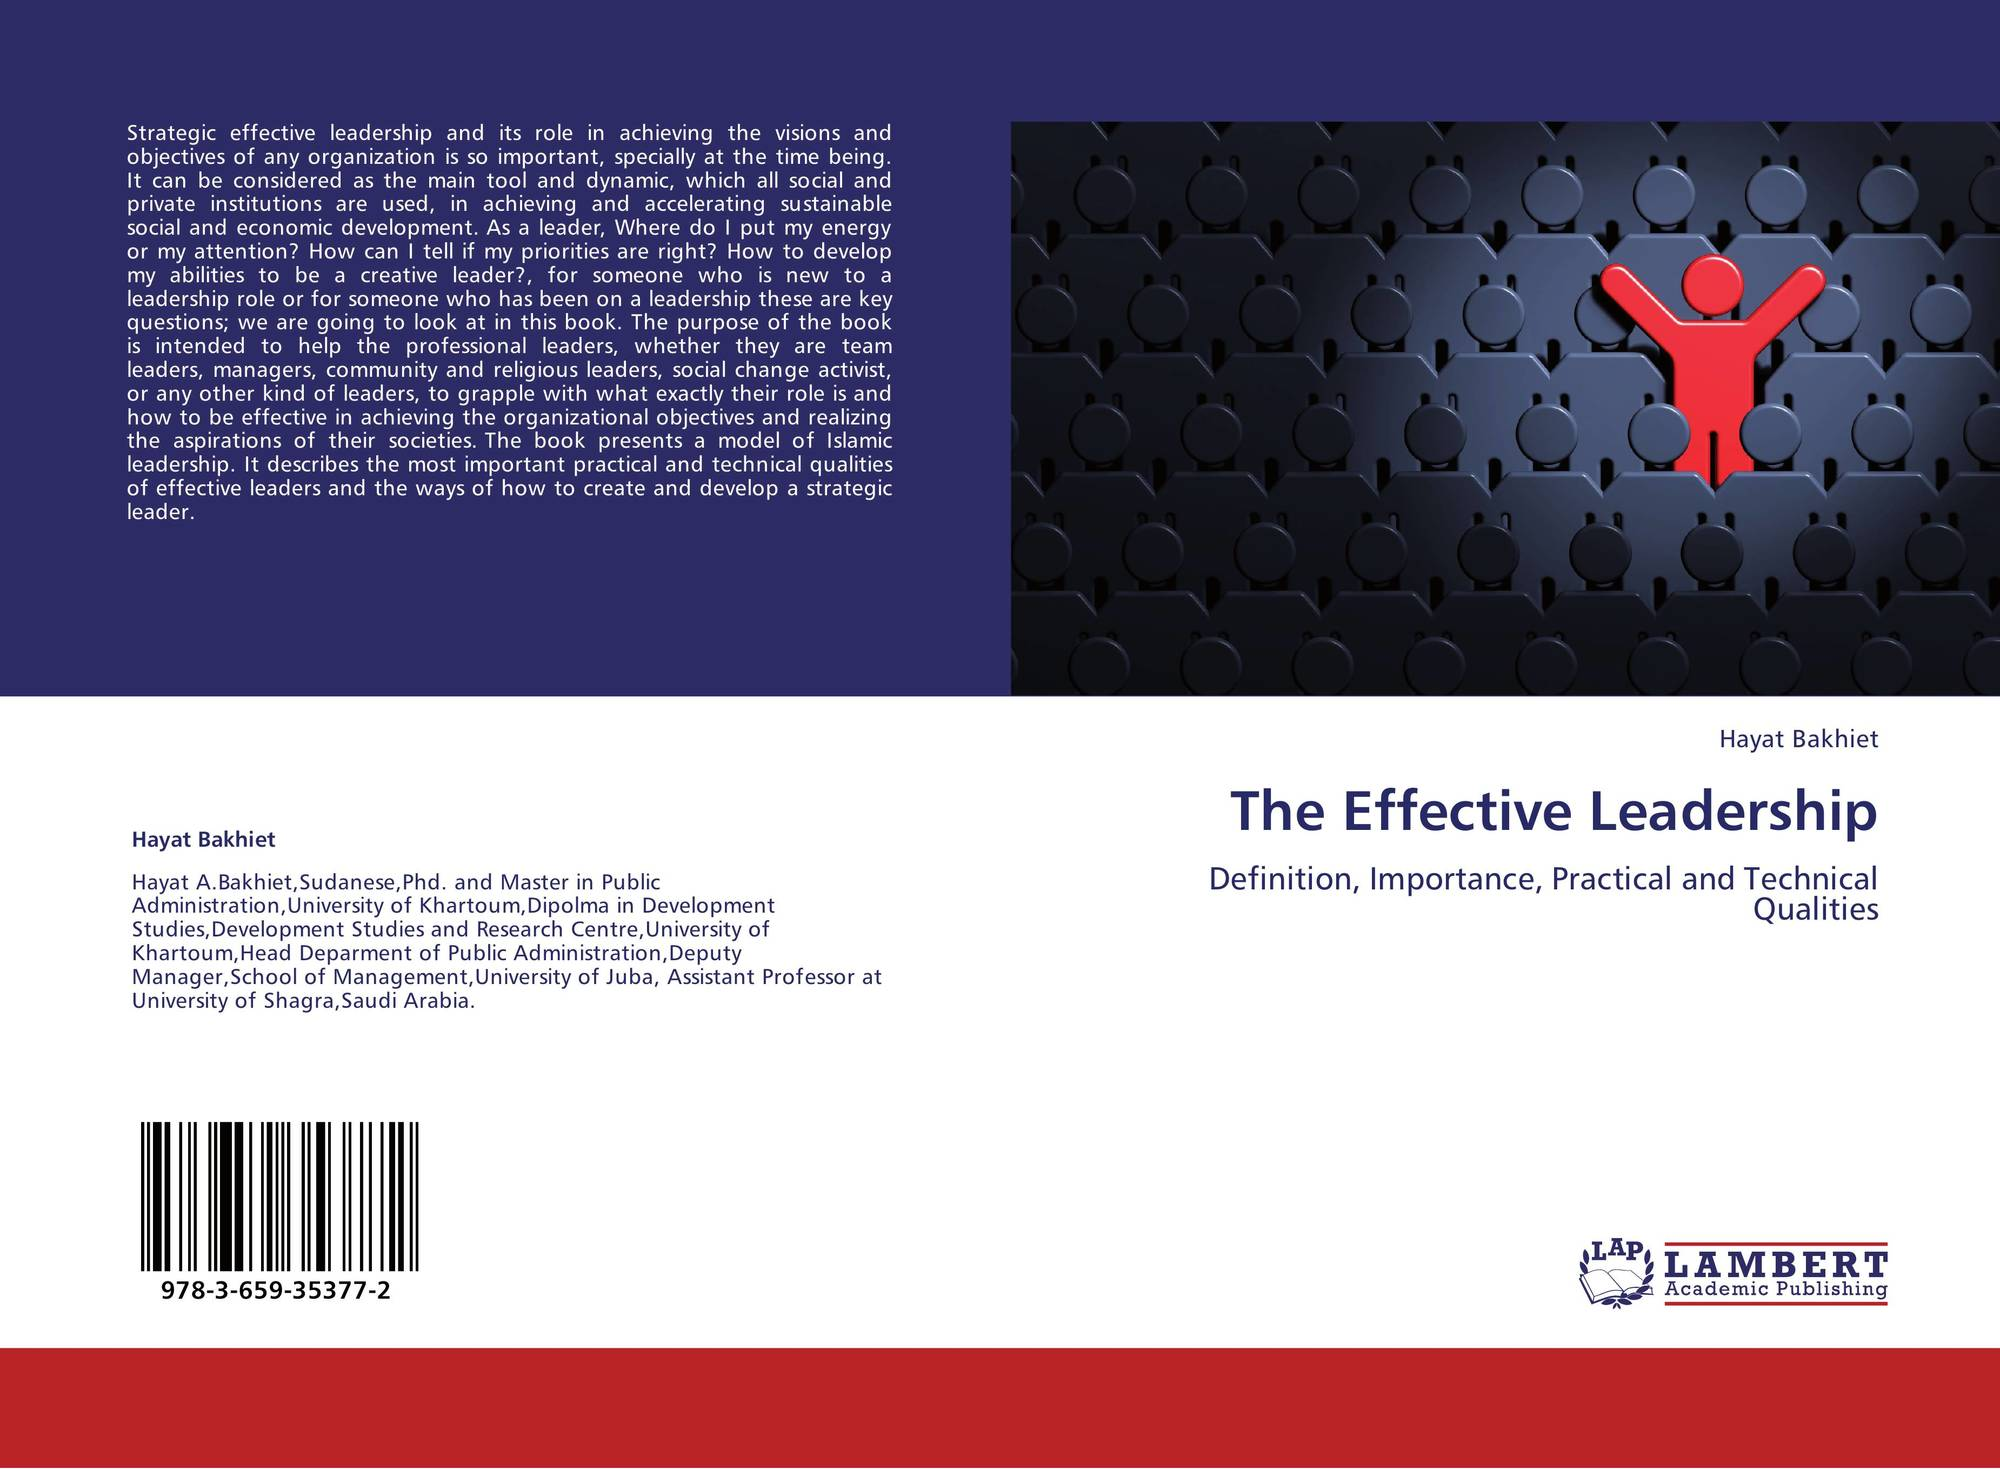 effective and dynamic leadership